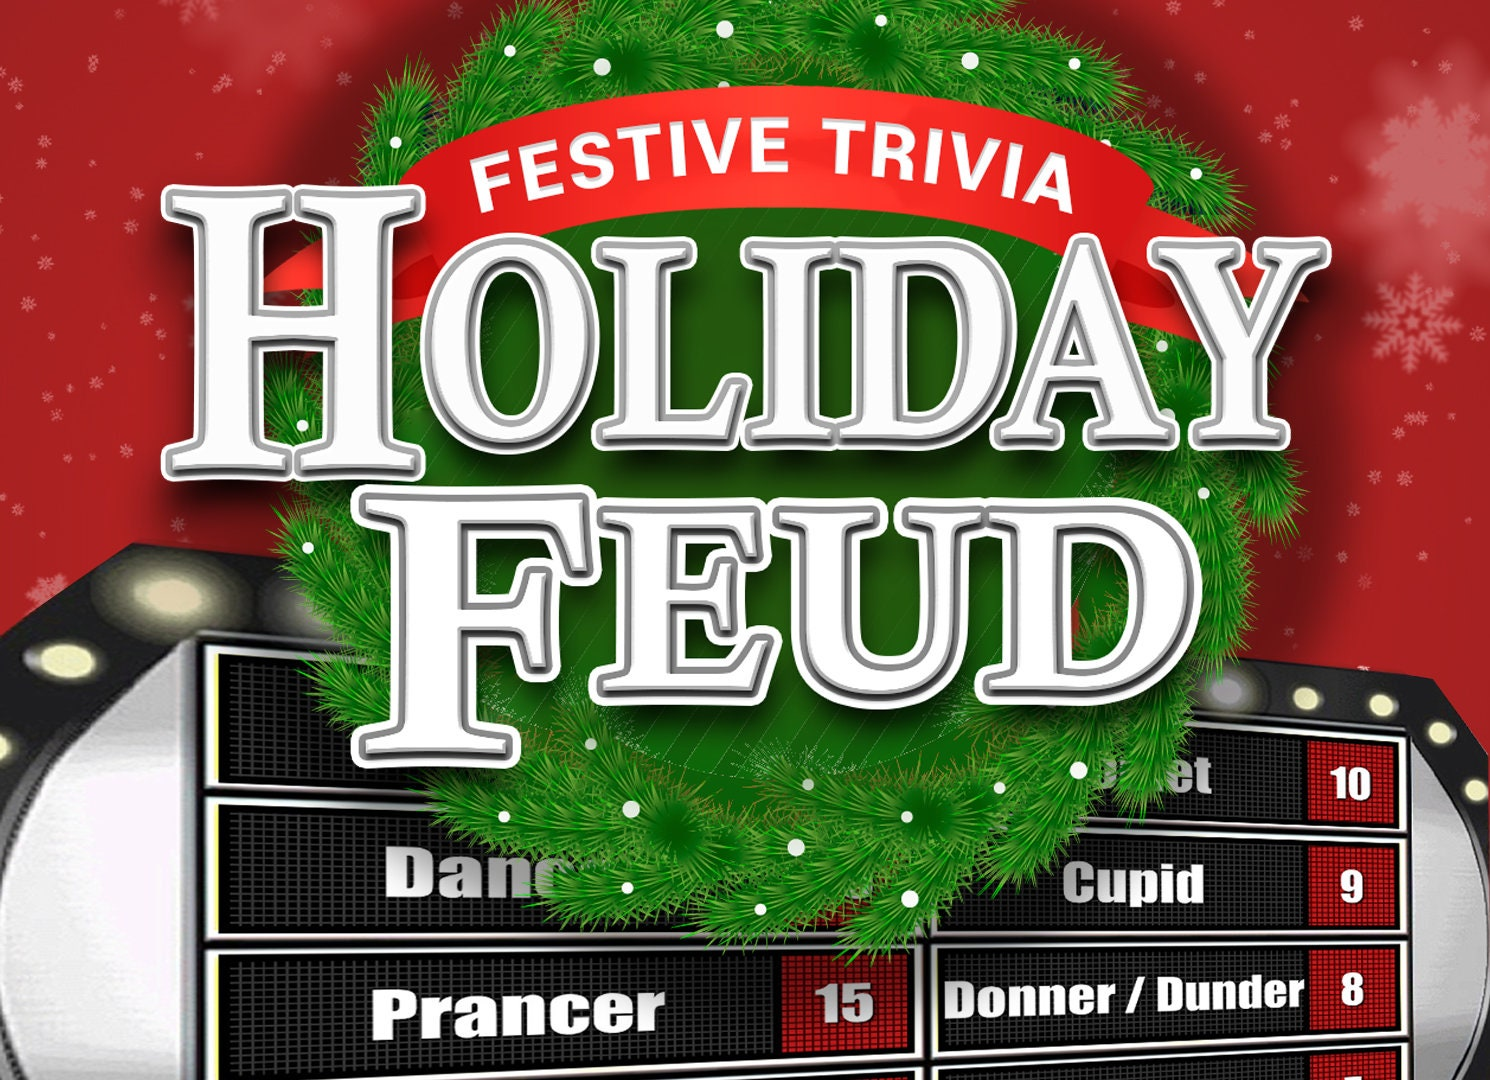 Holiday Feud - Christmas Family Feud Style Trivia Powerpoint Game - Mac,  PC, and iPad Compatible - Fun Christmas Game - Holiday Trivia Games